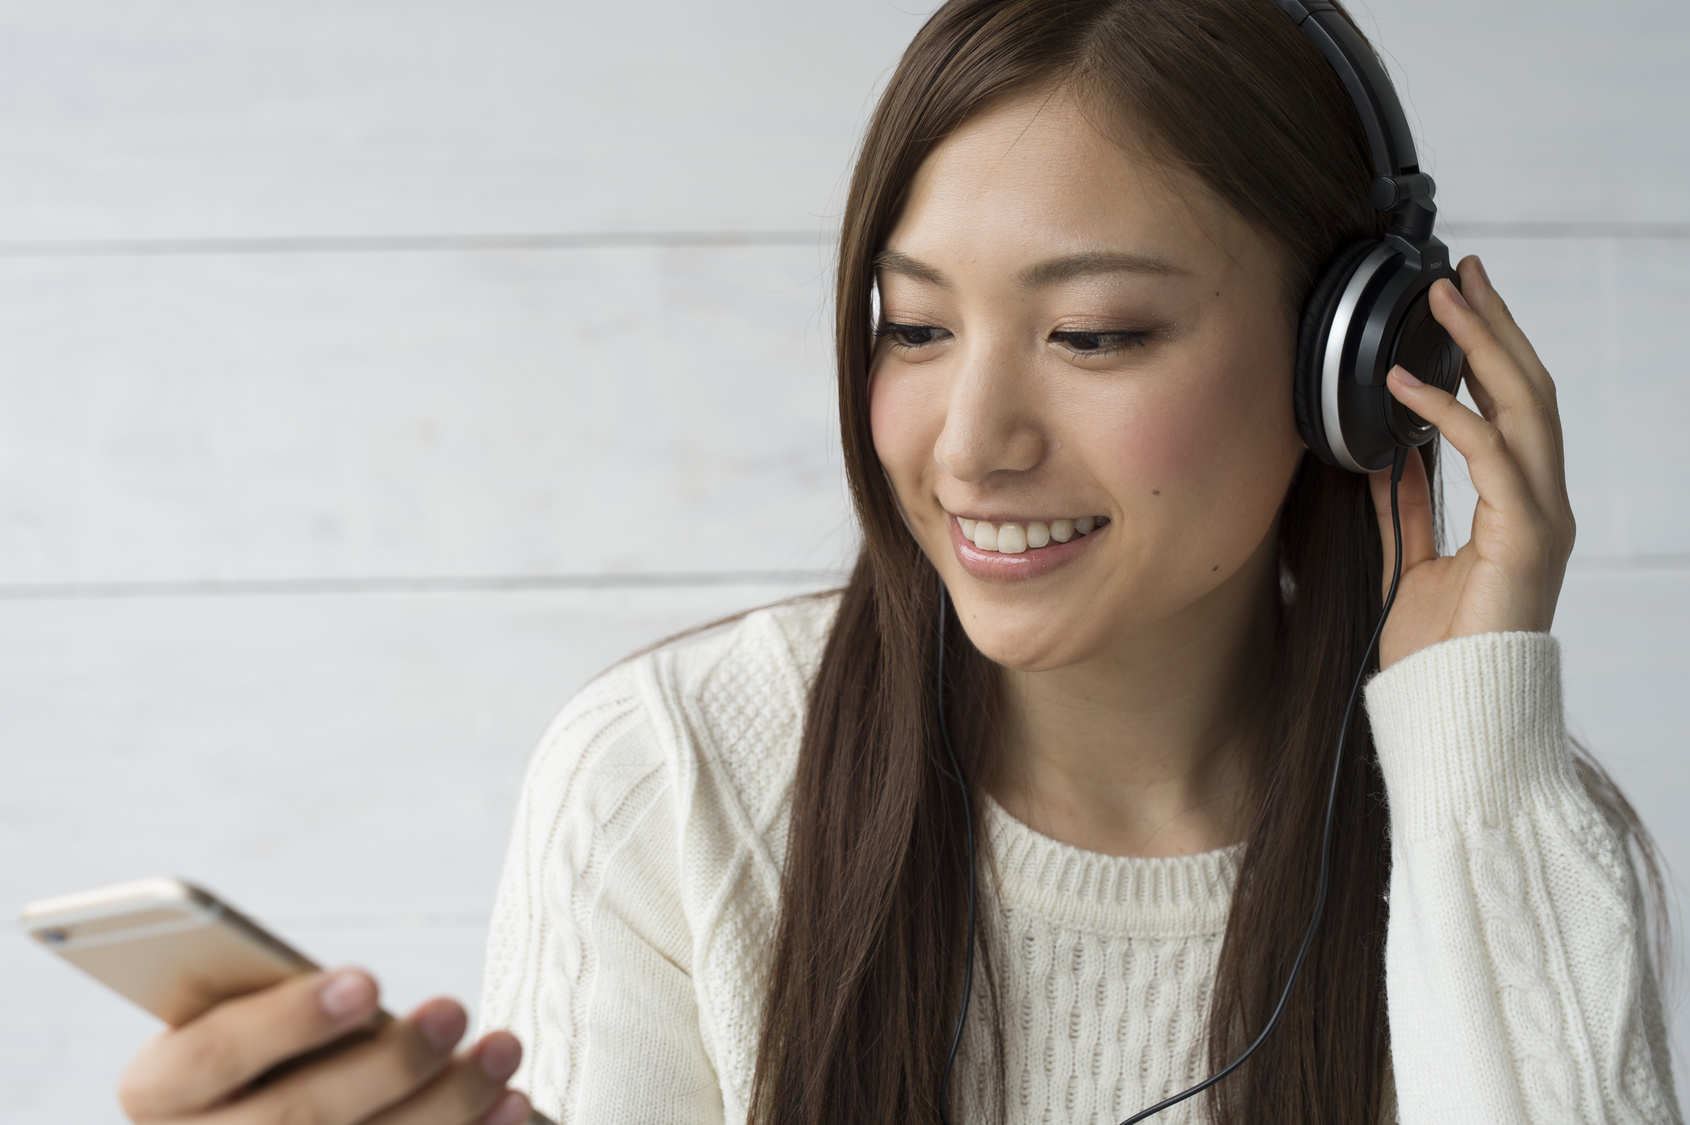 Women are listening to music with the latest smartphone